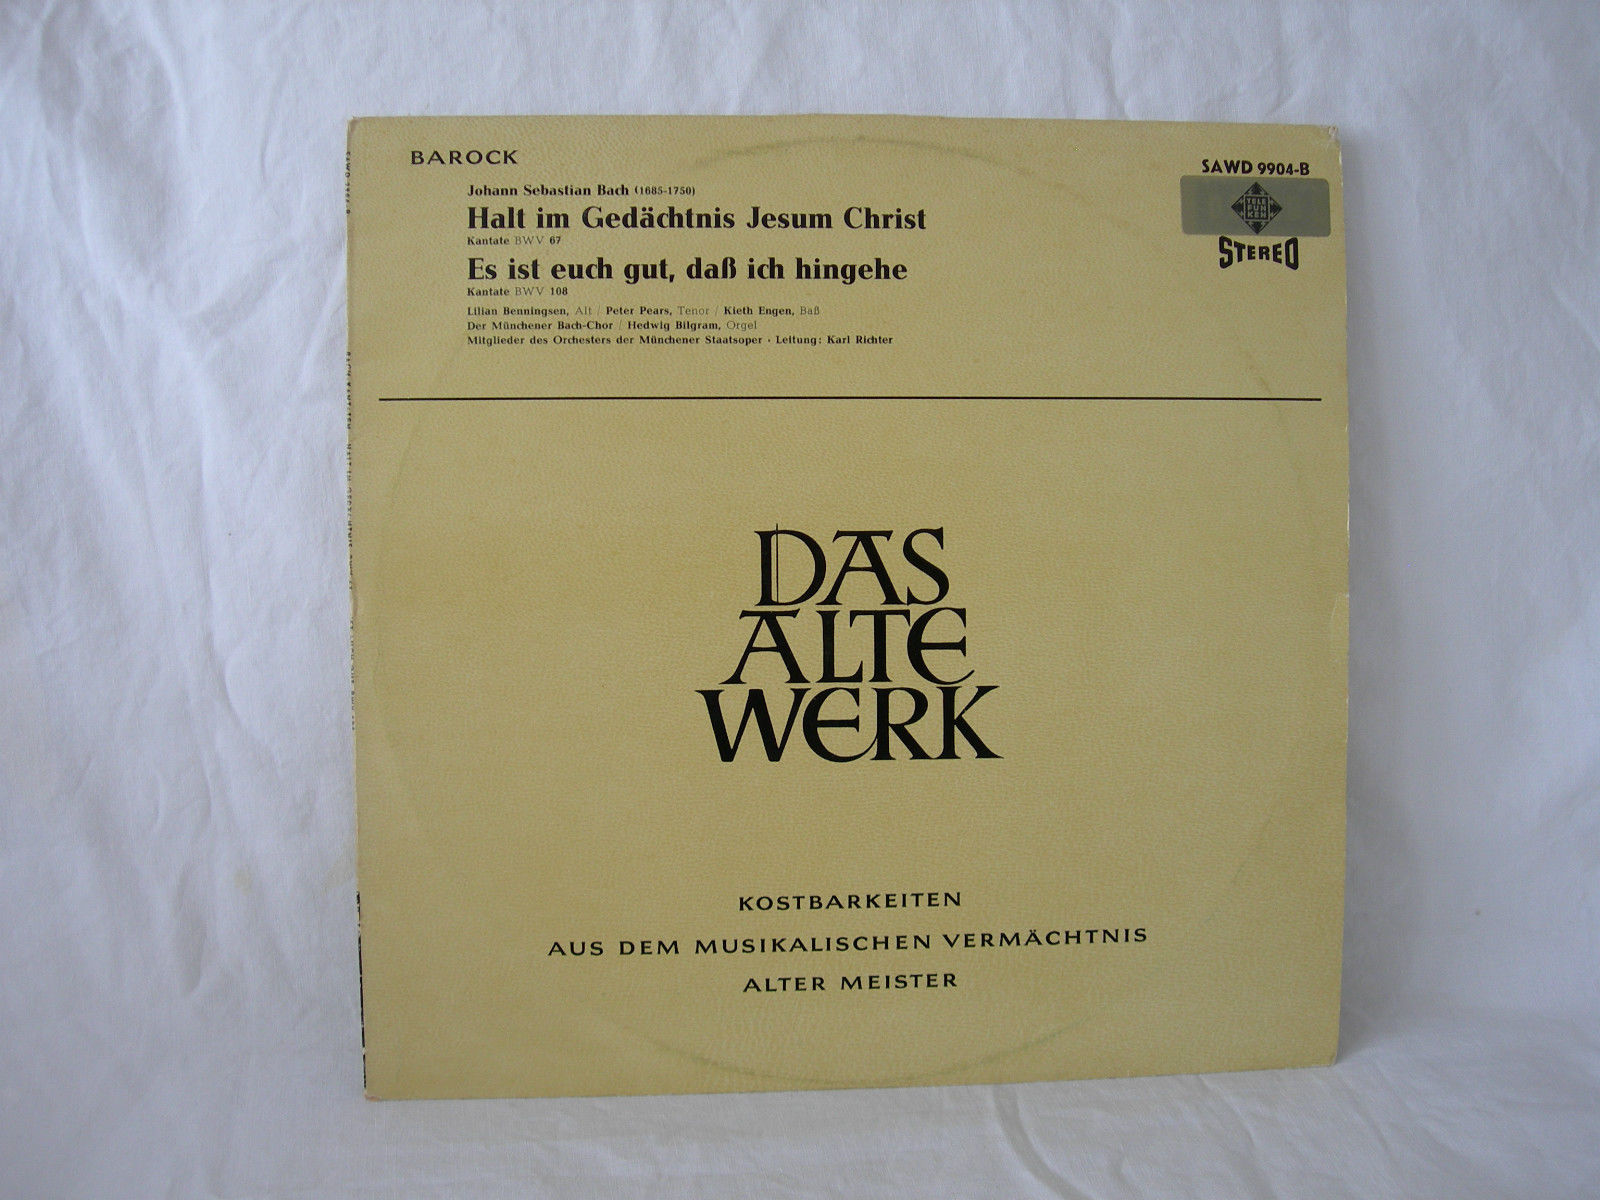 Kubik Haus Cantata Bwv 108 Details Discography Part 1 Complete Recordings